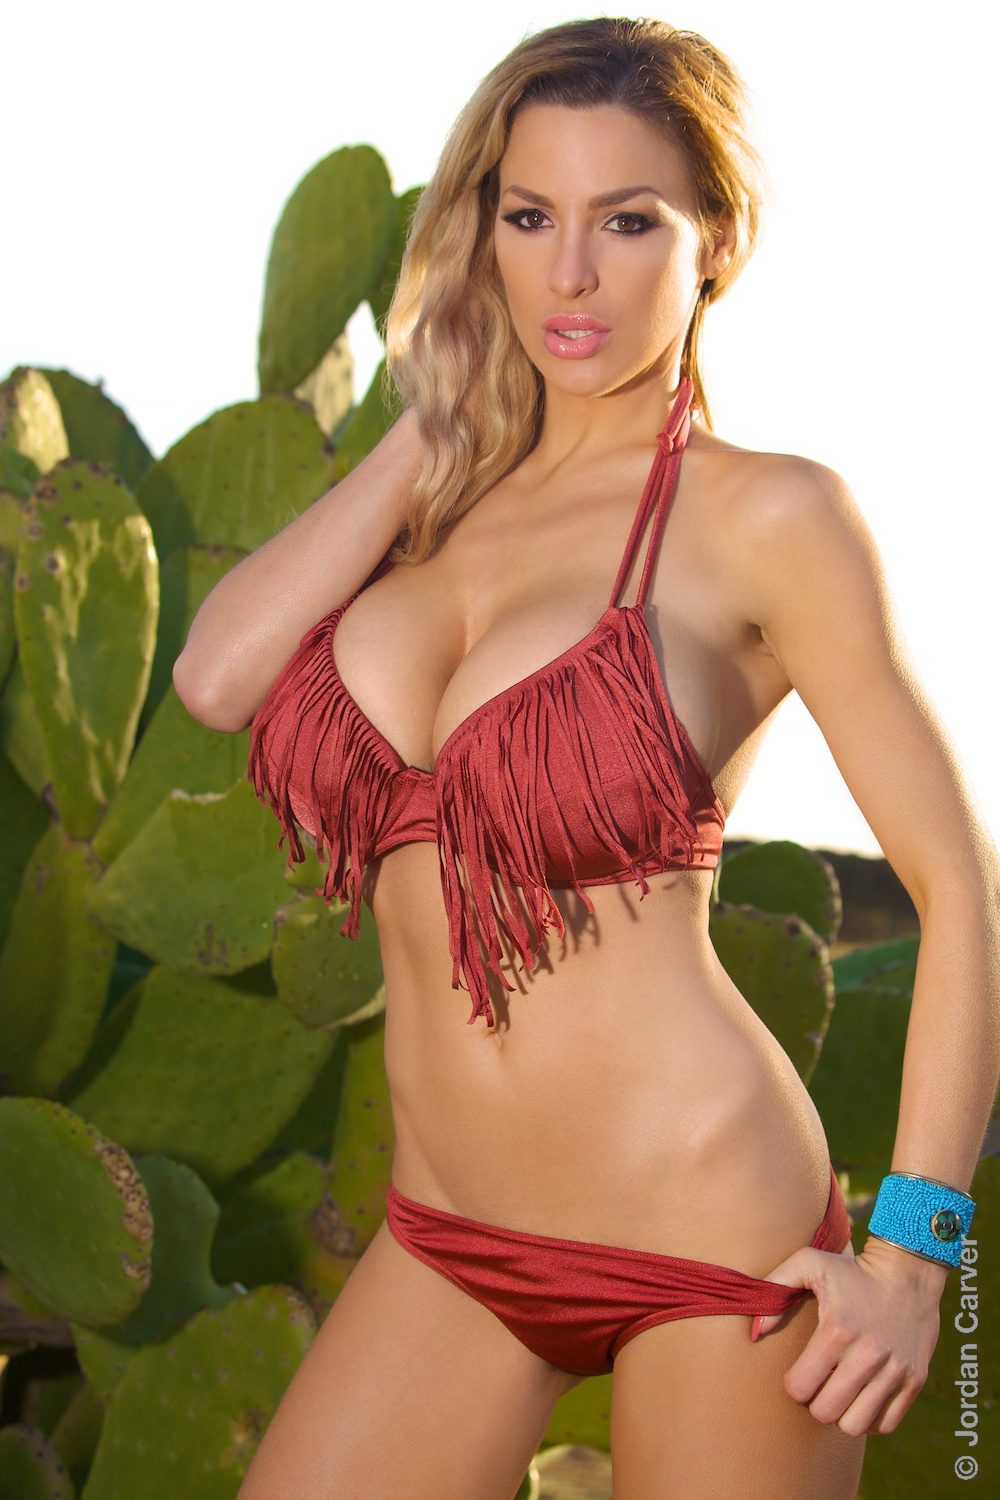 Jordan Carver In Bikini - Indian Girl - Big Boobs Jordan -9918